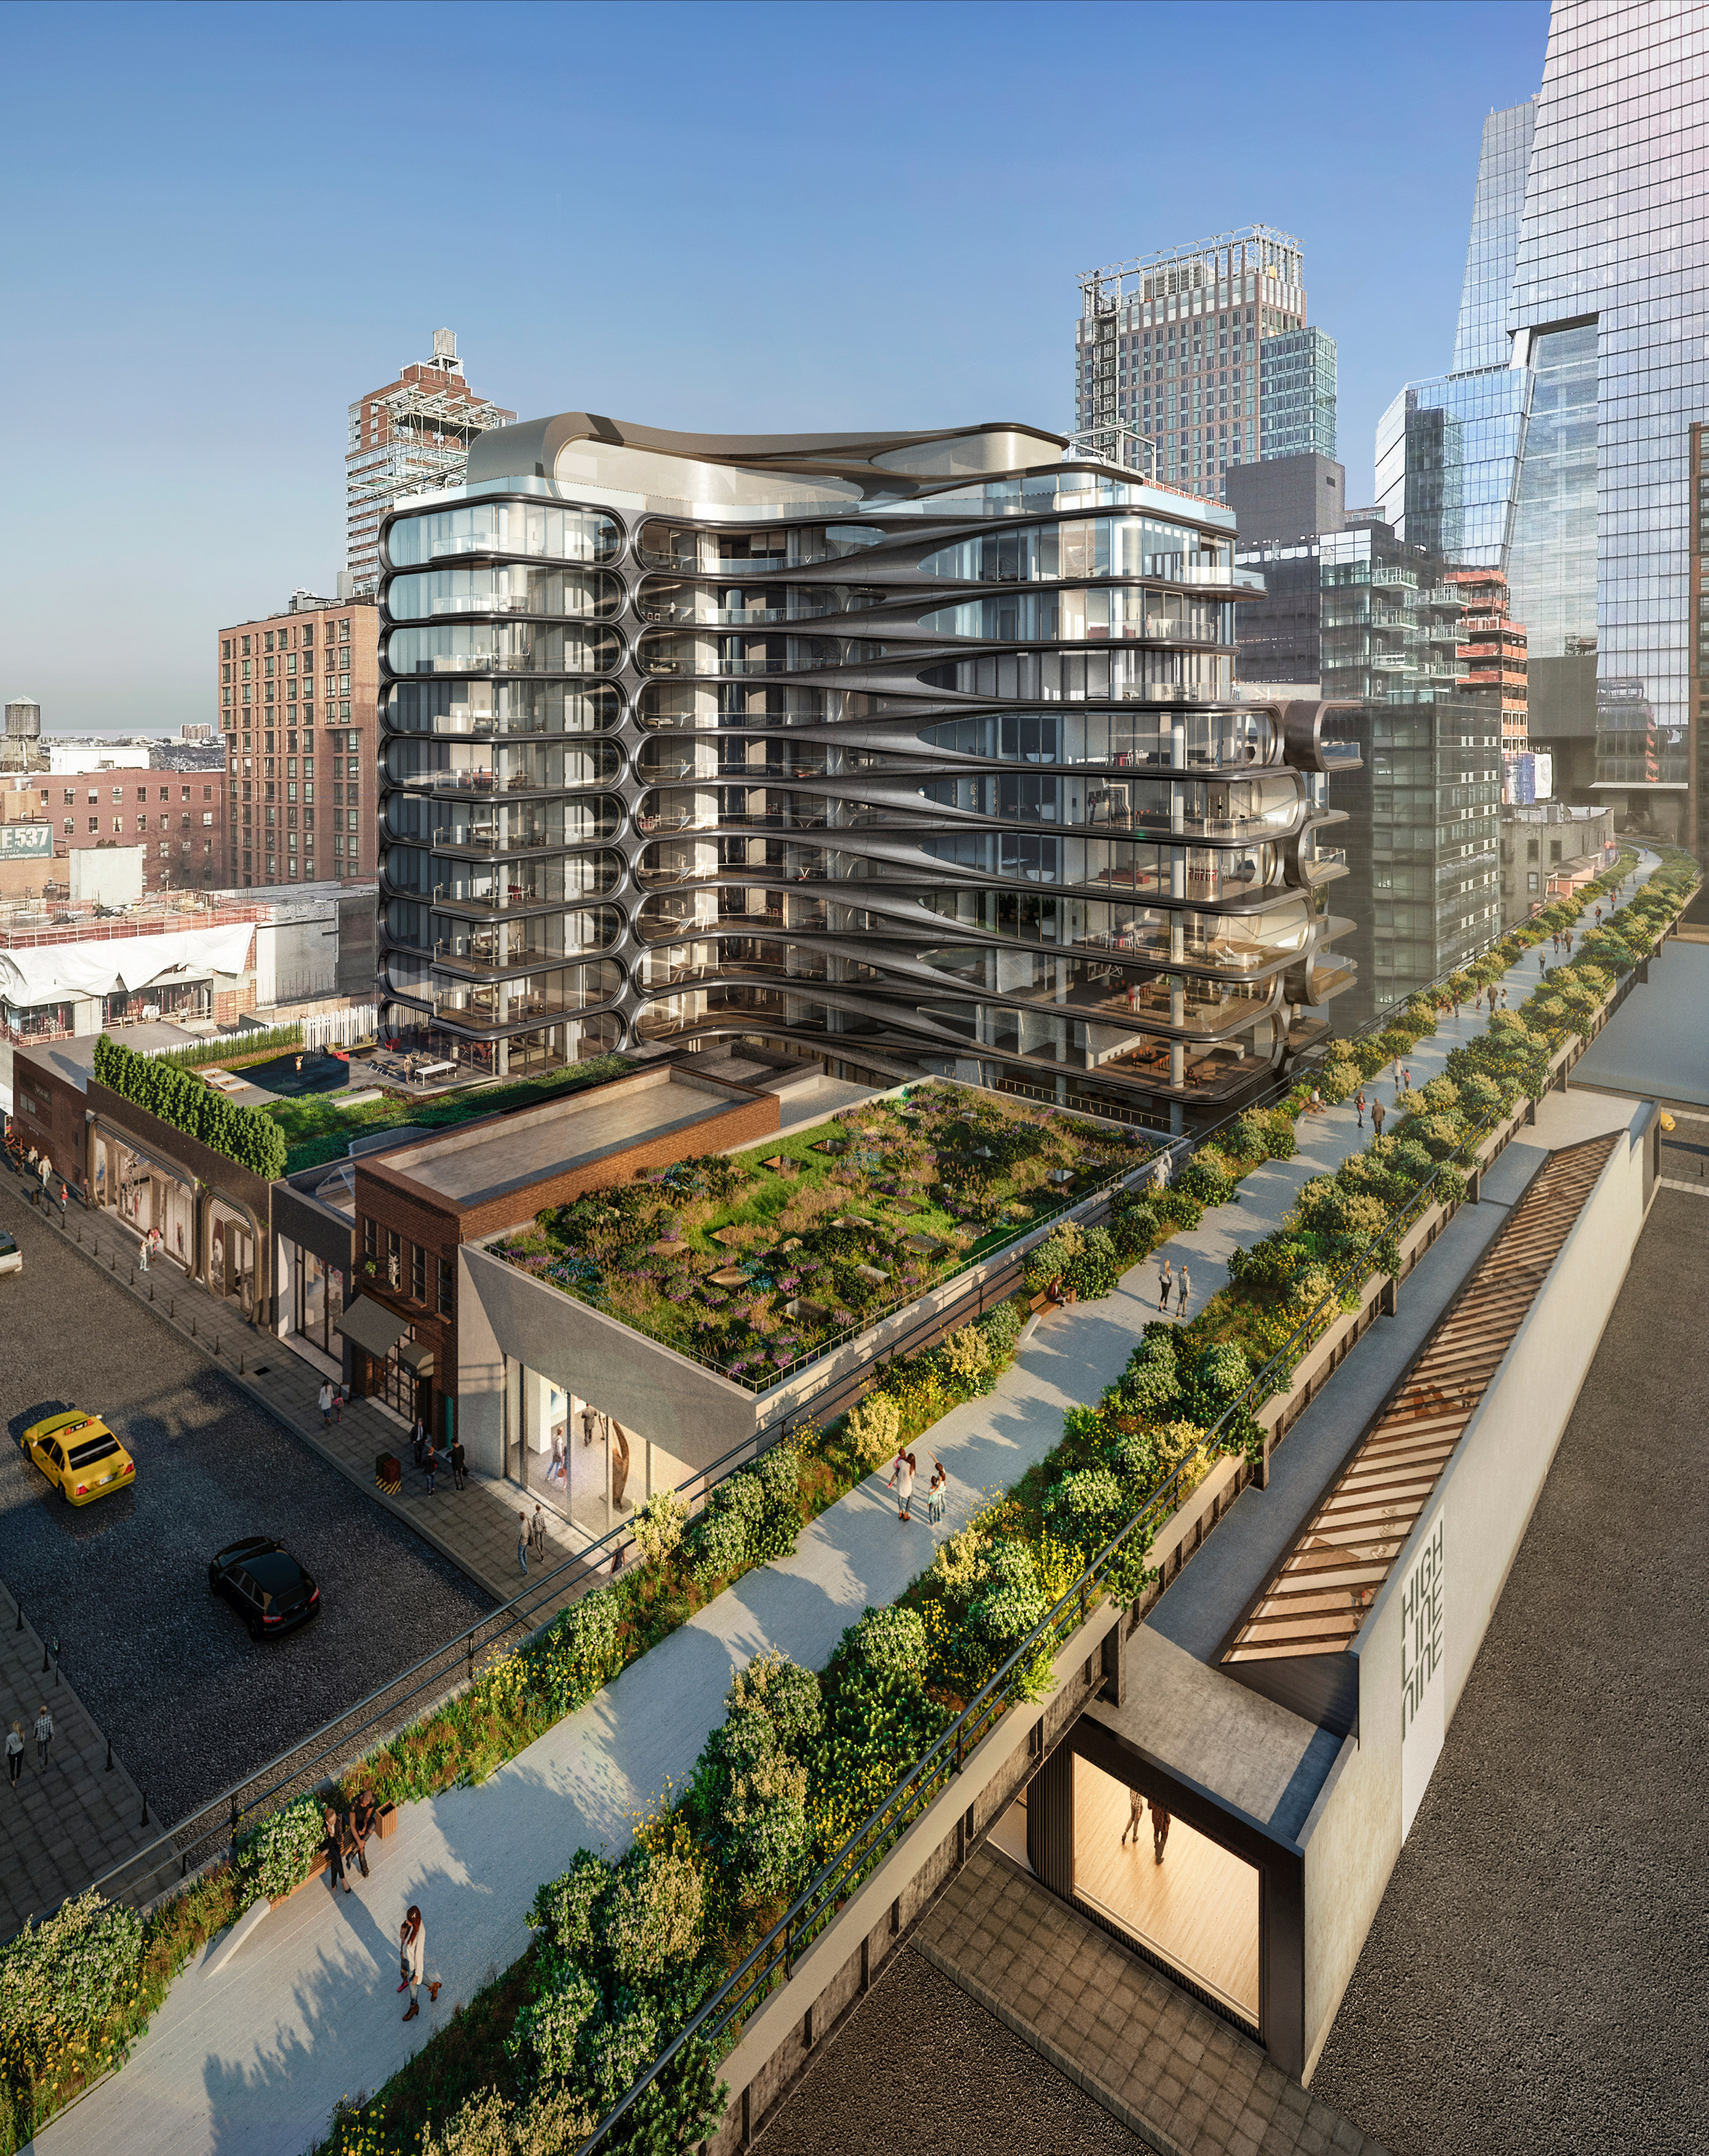 High Line Nine galleries to surround Zaha Hadid's New York condos